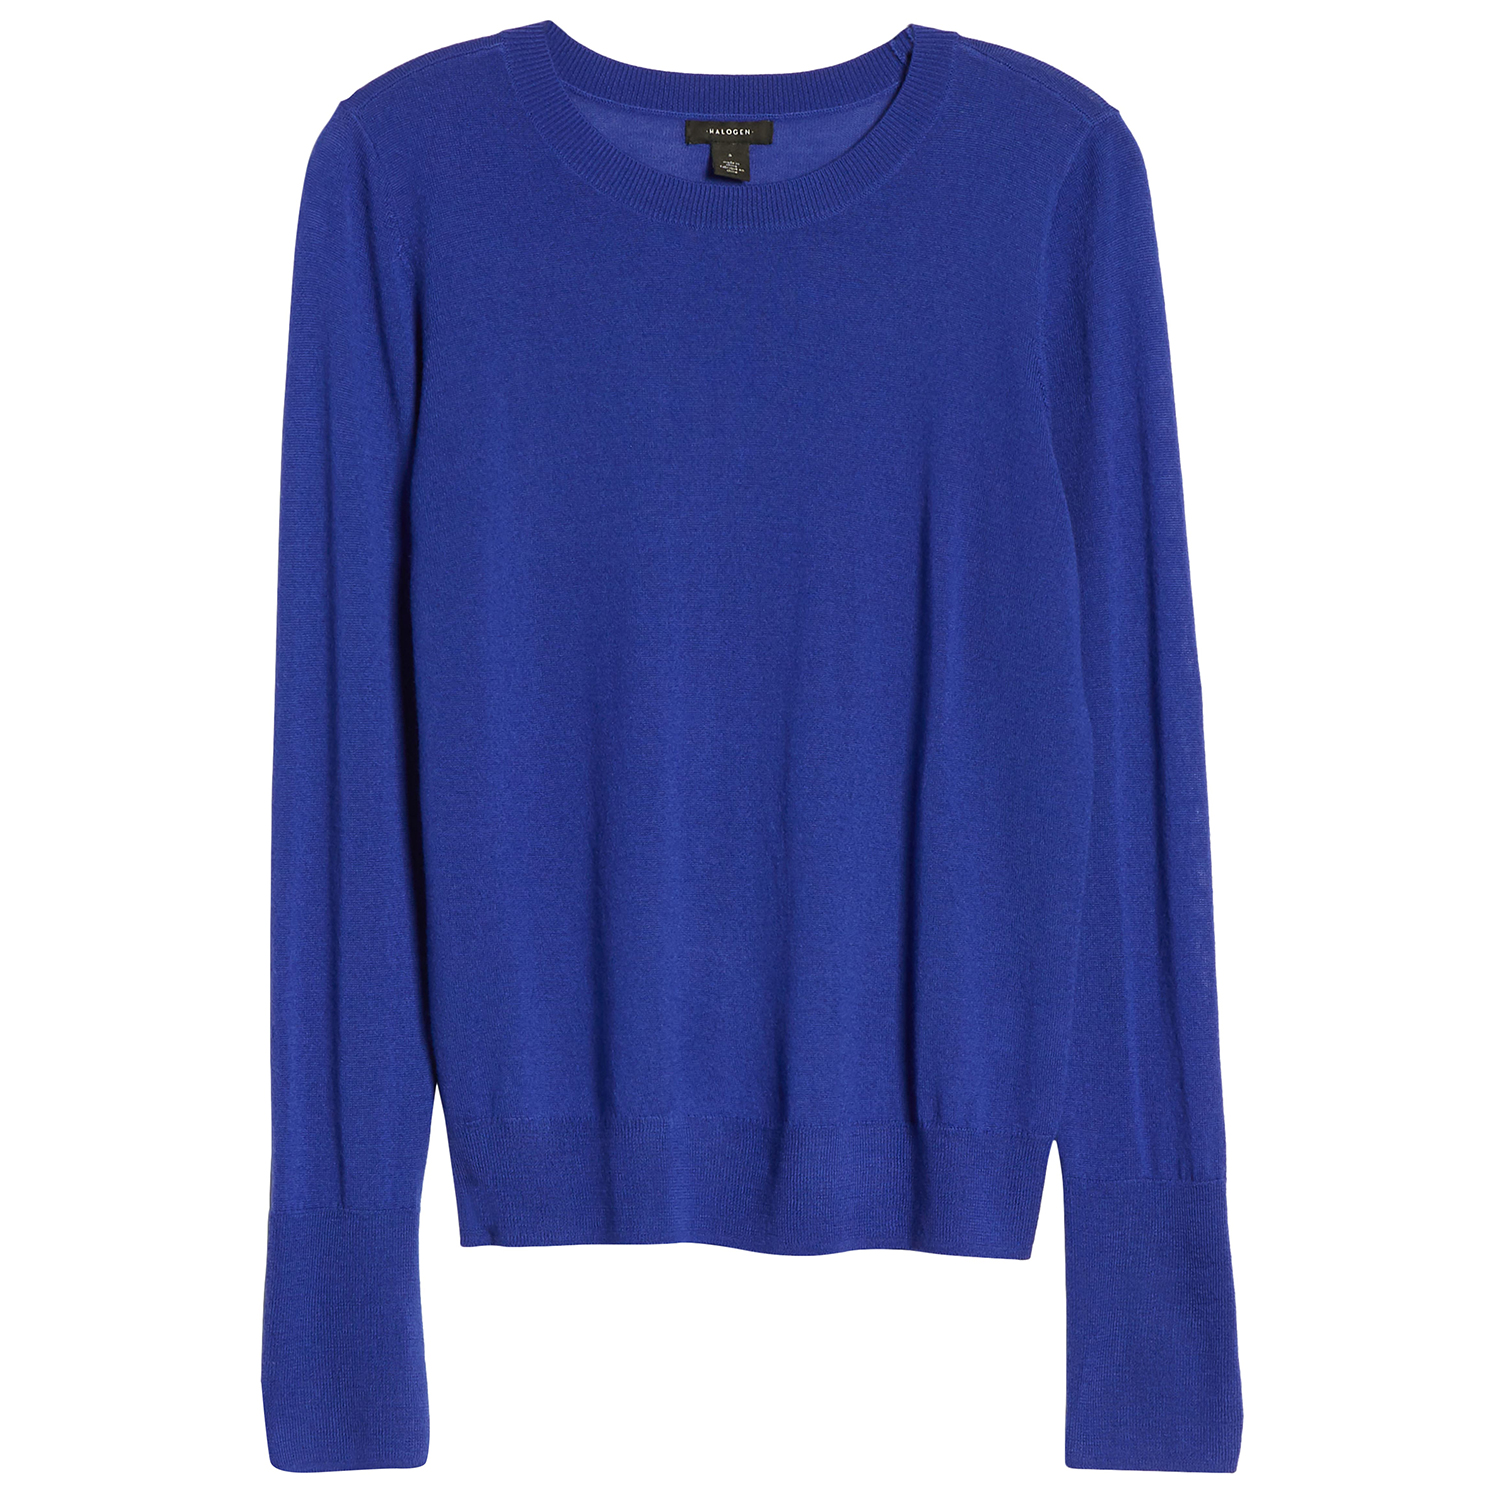 Halogen Crewneck Merino Wool Blend Sweater